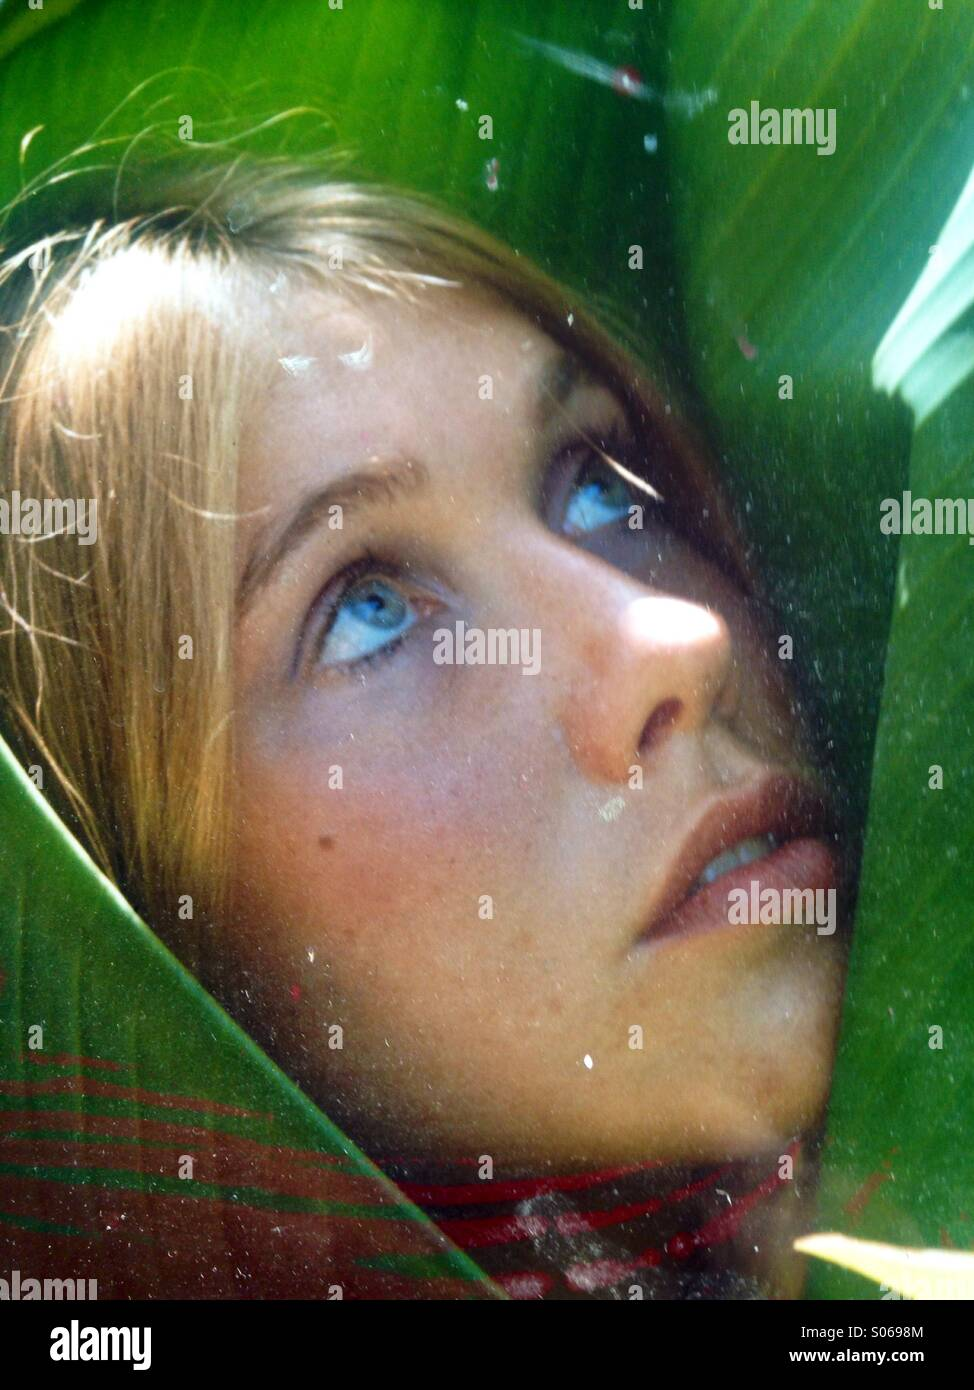 Vertical Young woman's face looking upwards wrapped in a green banana leaf matching her eyes. Stock Photo